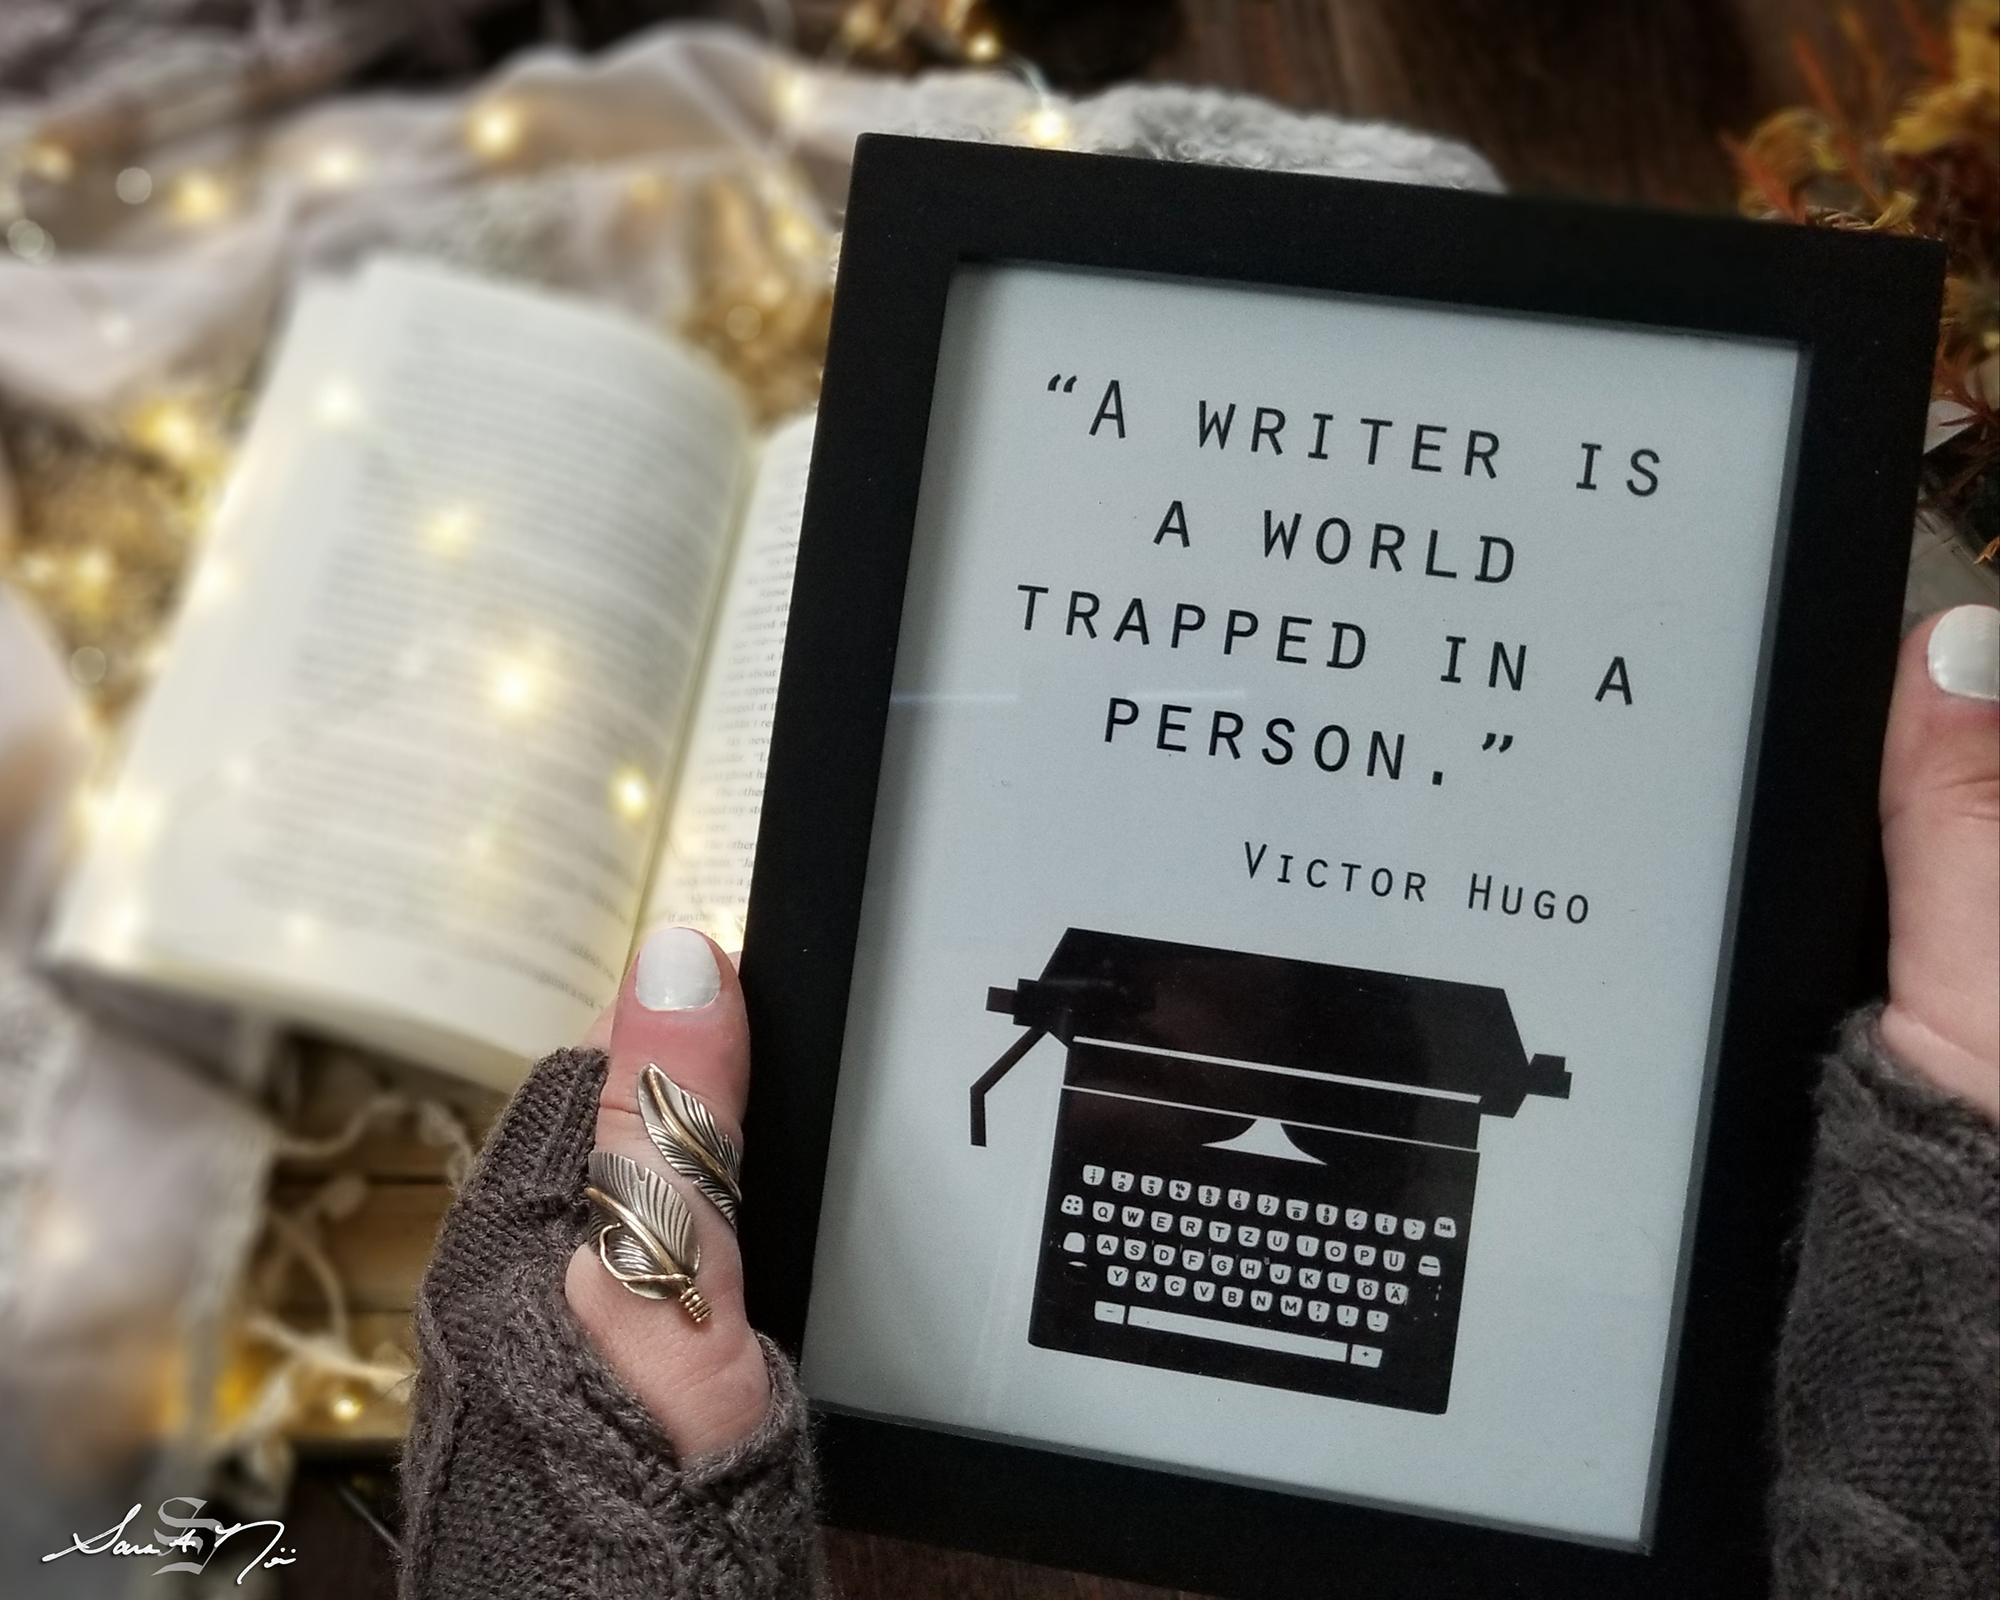 Writing quote Victor Hugo with book and lights in the background